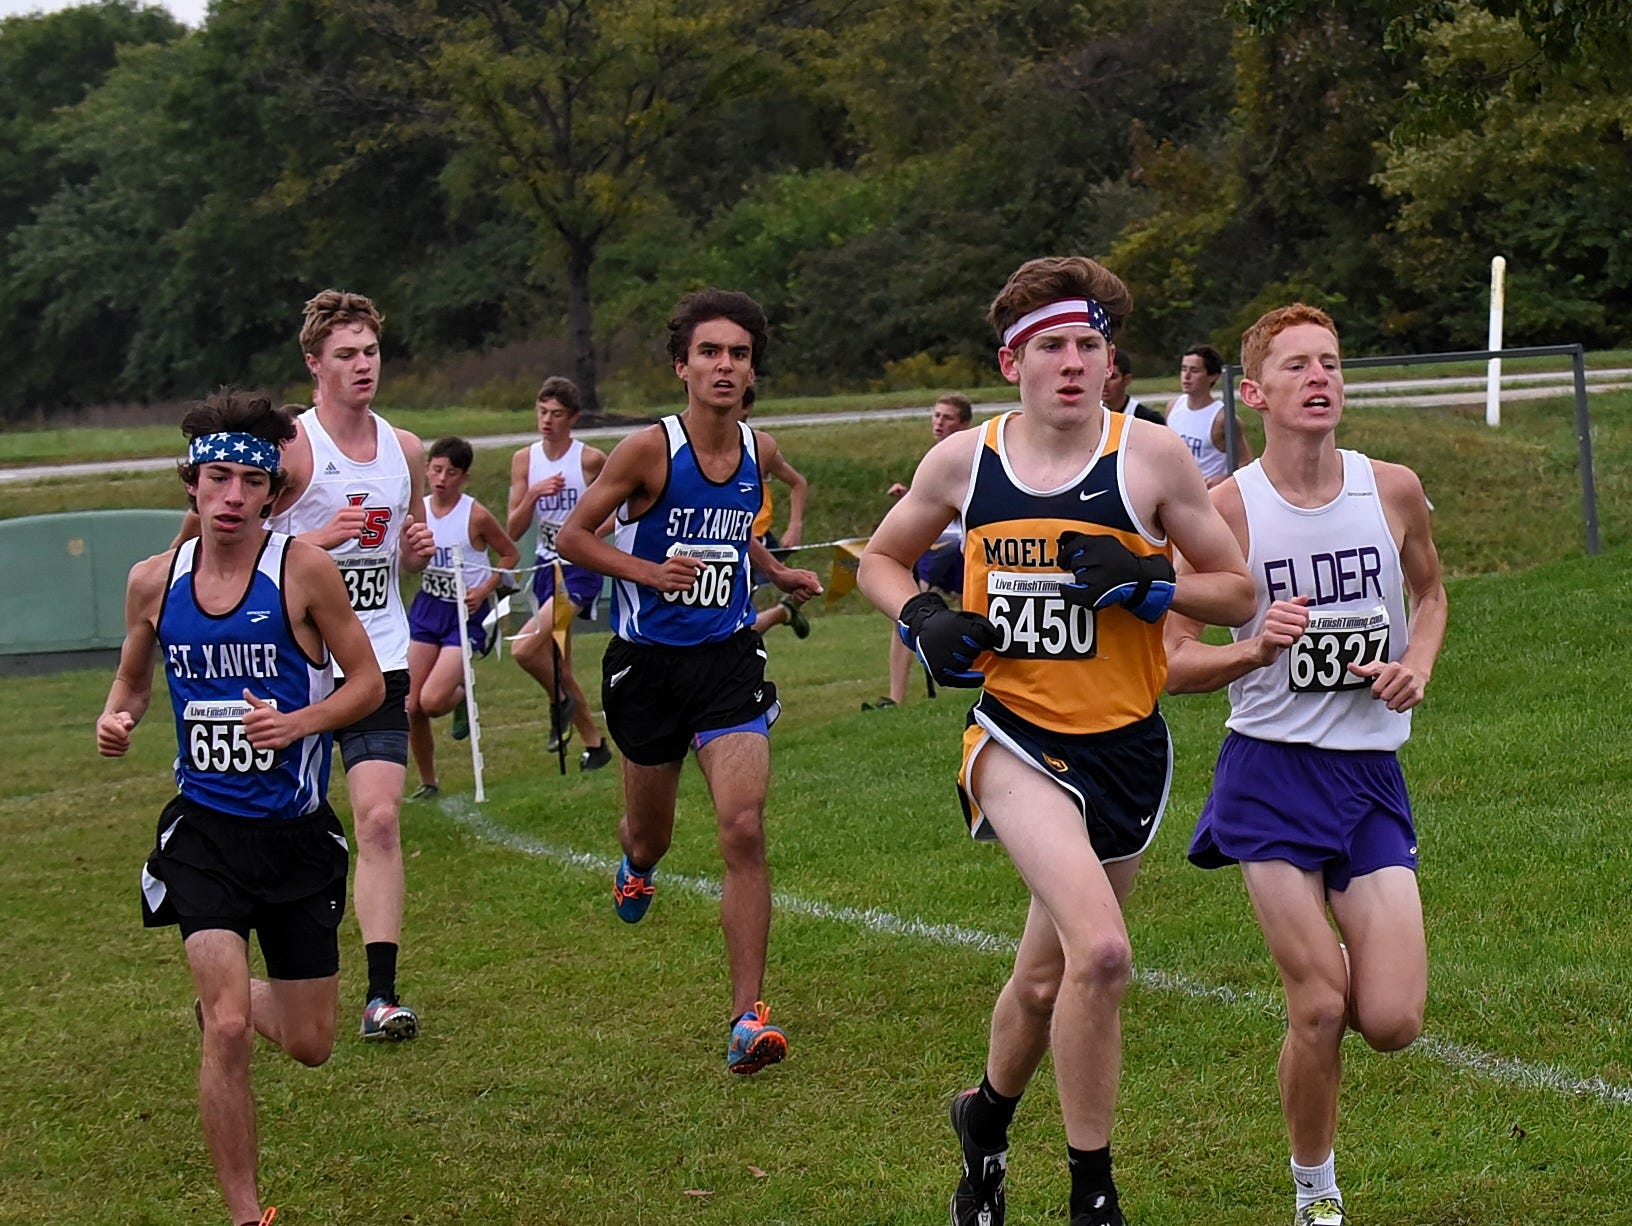 GCL South runners power into the backstretch at the 2018 GCL/GGCL Cross Country Championships, October 13, 2018.